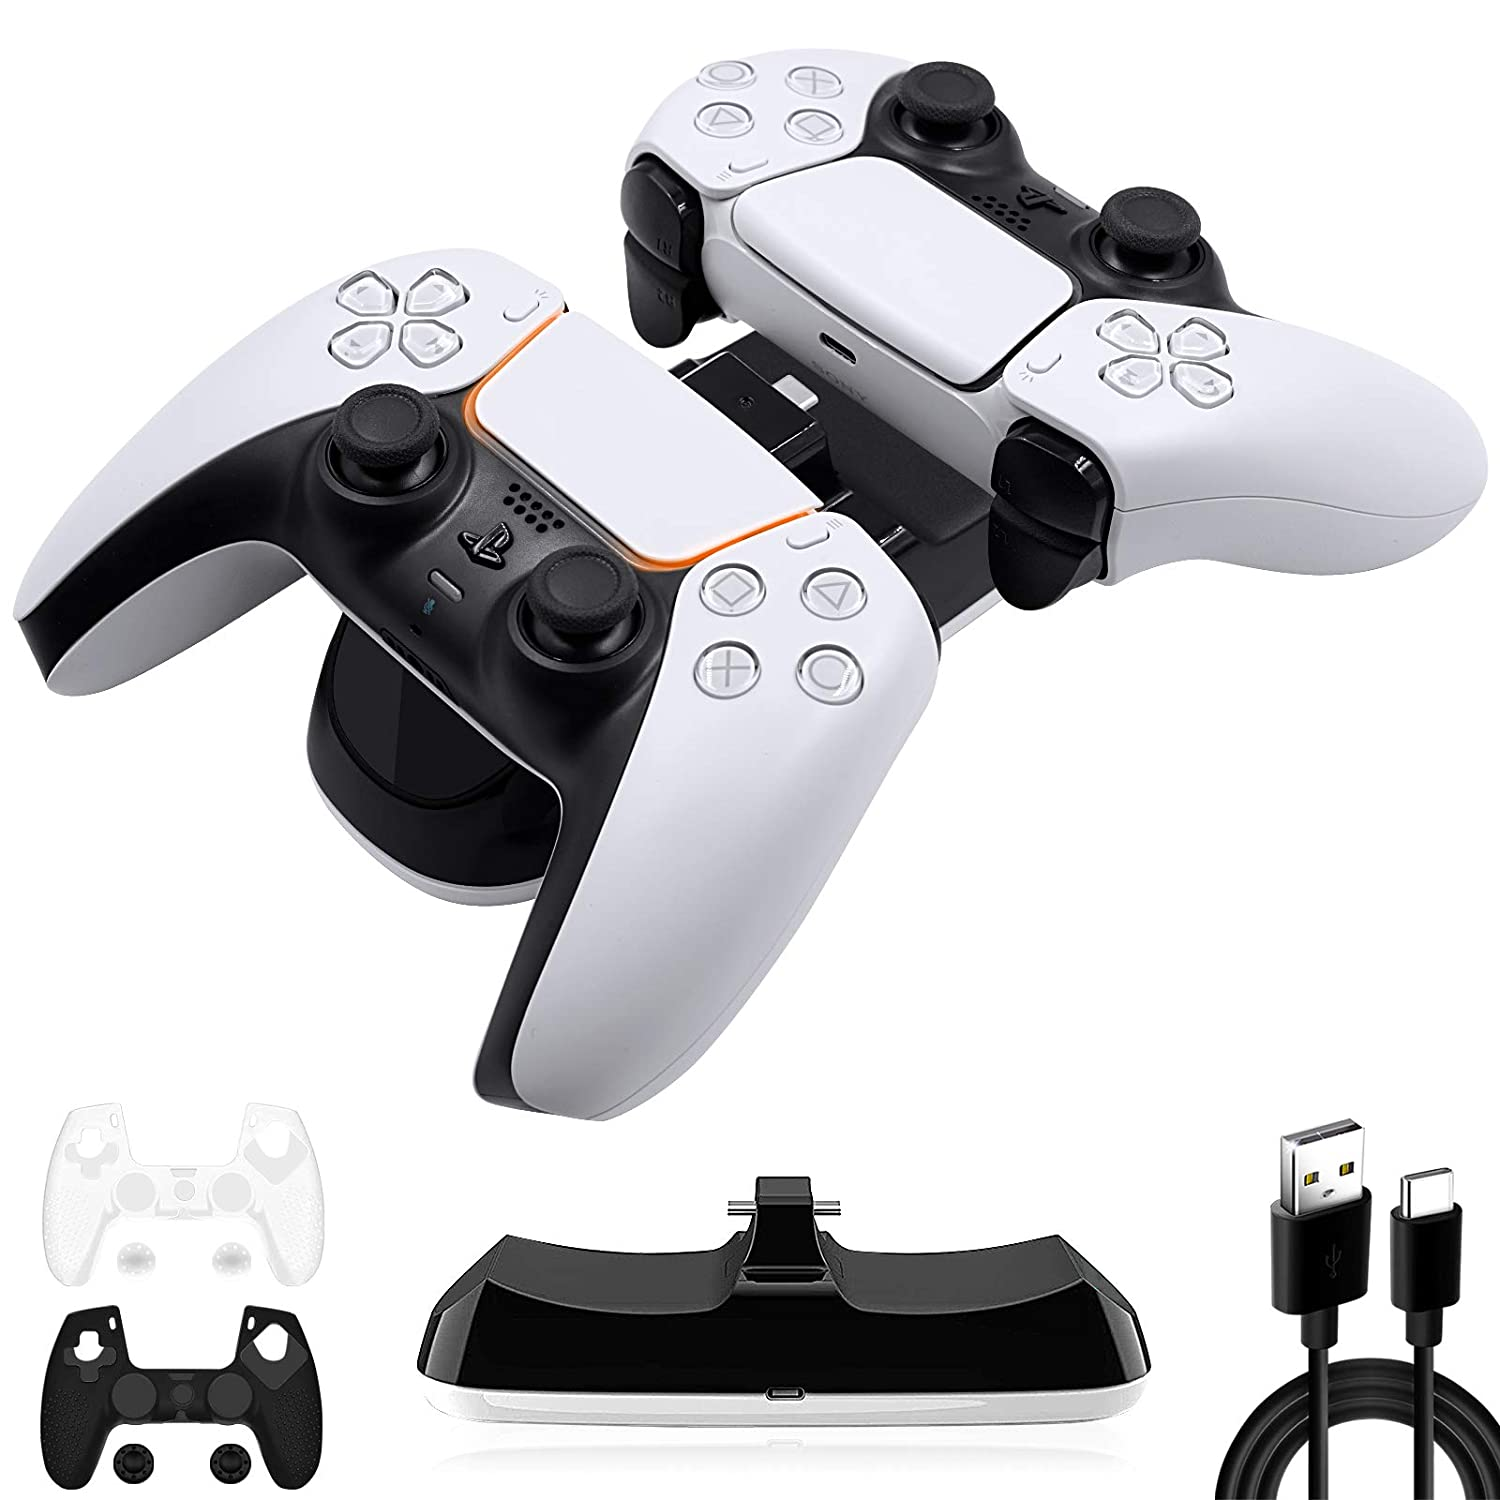 Spasm price PS5 Controller Charger Upgraded Playstation Station 5 Selling rankings Charging